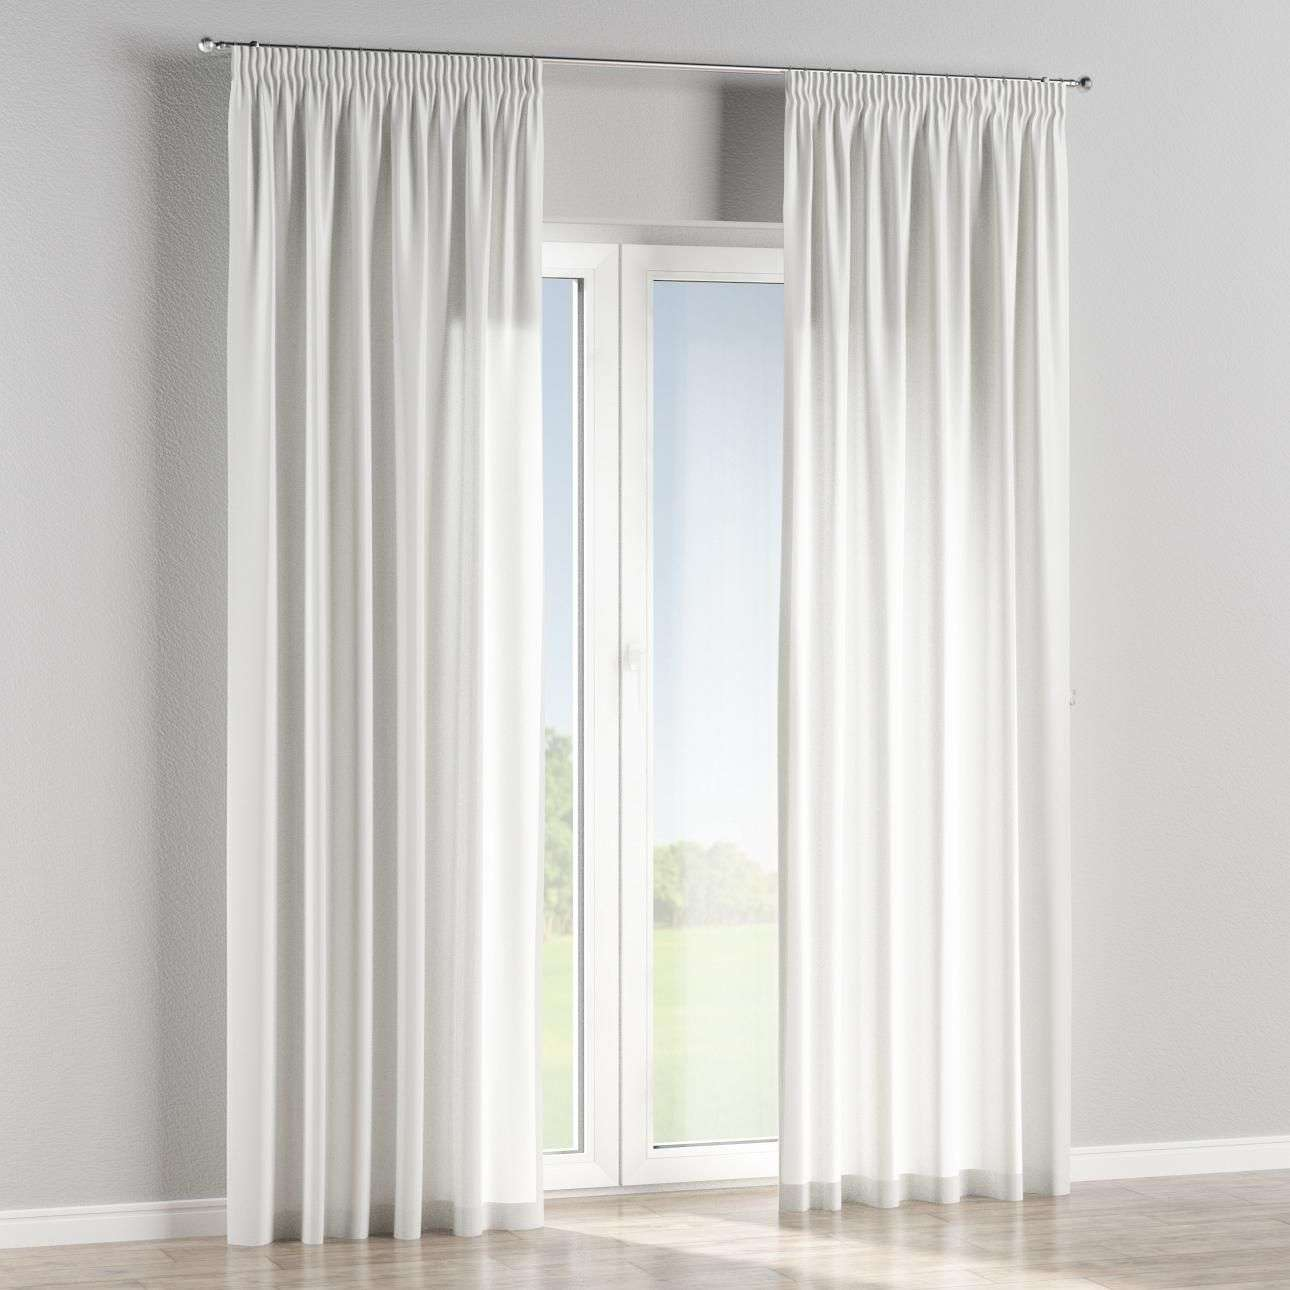 Pencil pleat curtains in collection Londres, fabric: 140-43